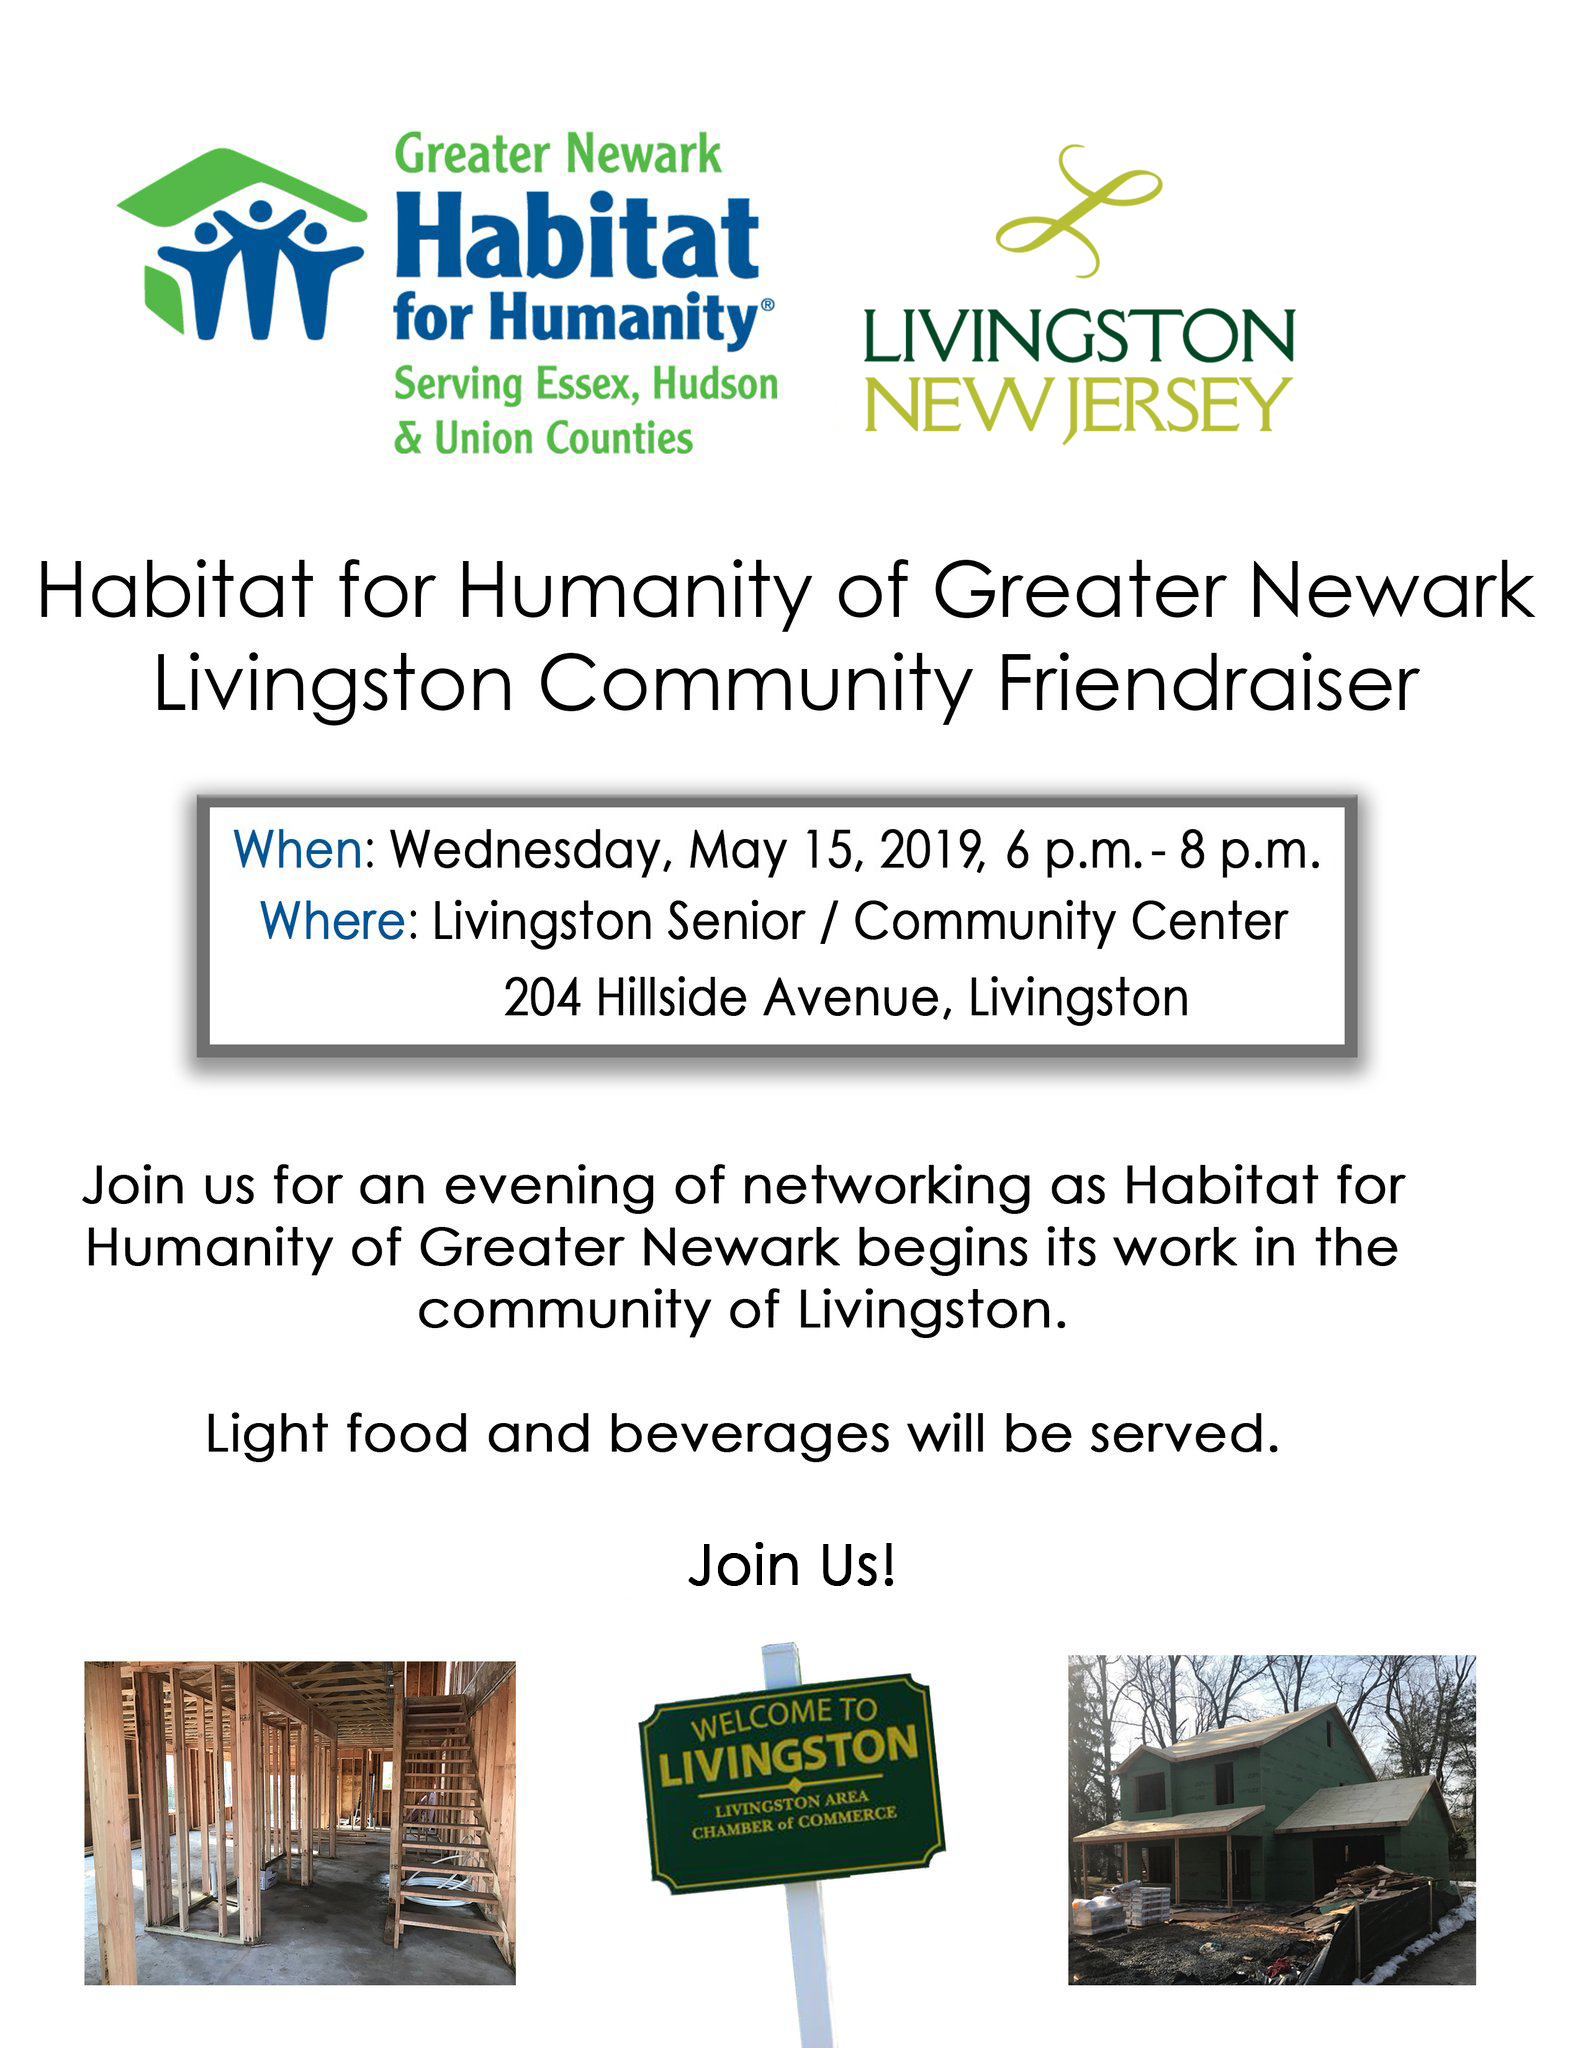 Flyer for Habitat for Humanity Livingston Community Friendraiser, May 15, 2019. Pictures of house un